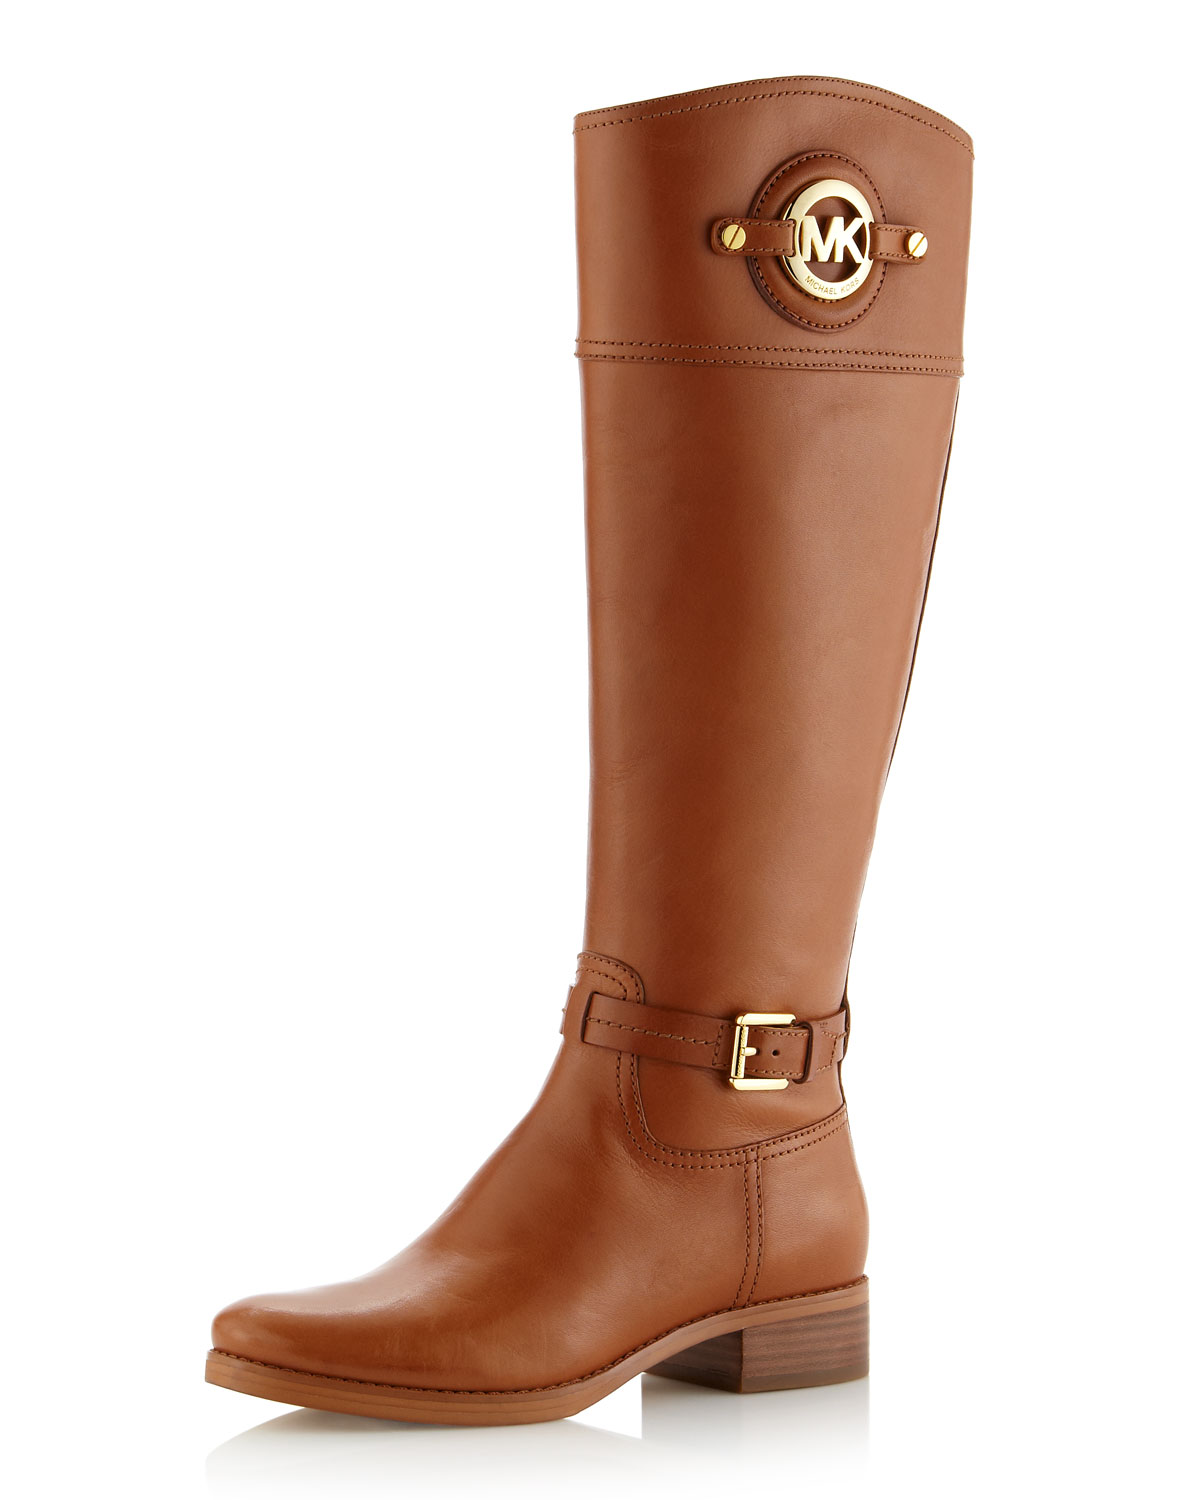 Michael michael kors Stockard Leather Riding Boot in Brown   Lyst